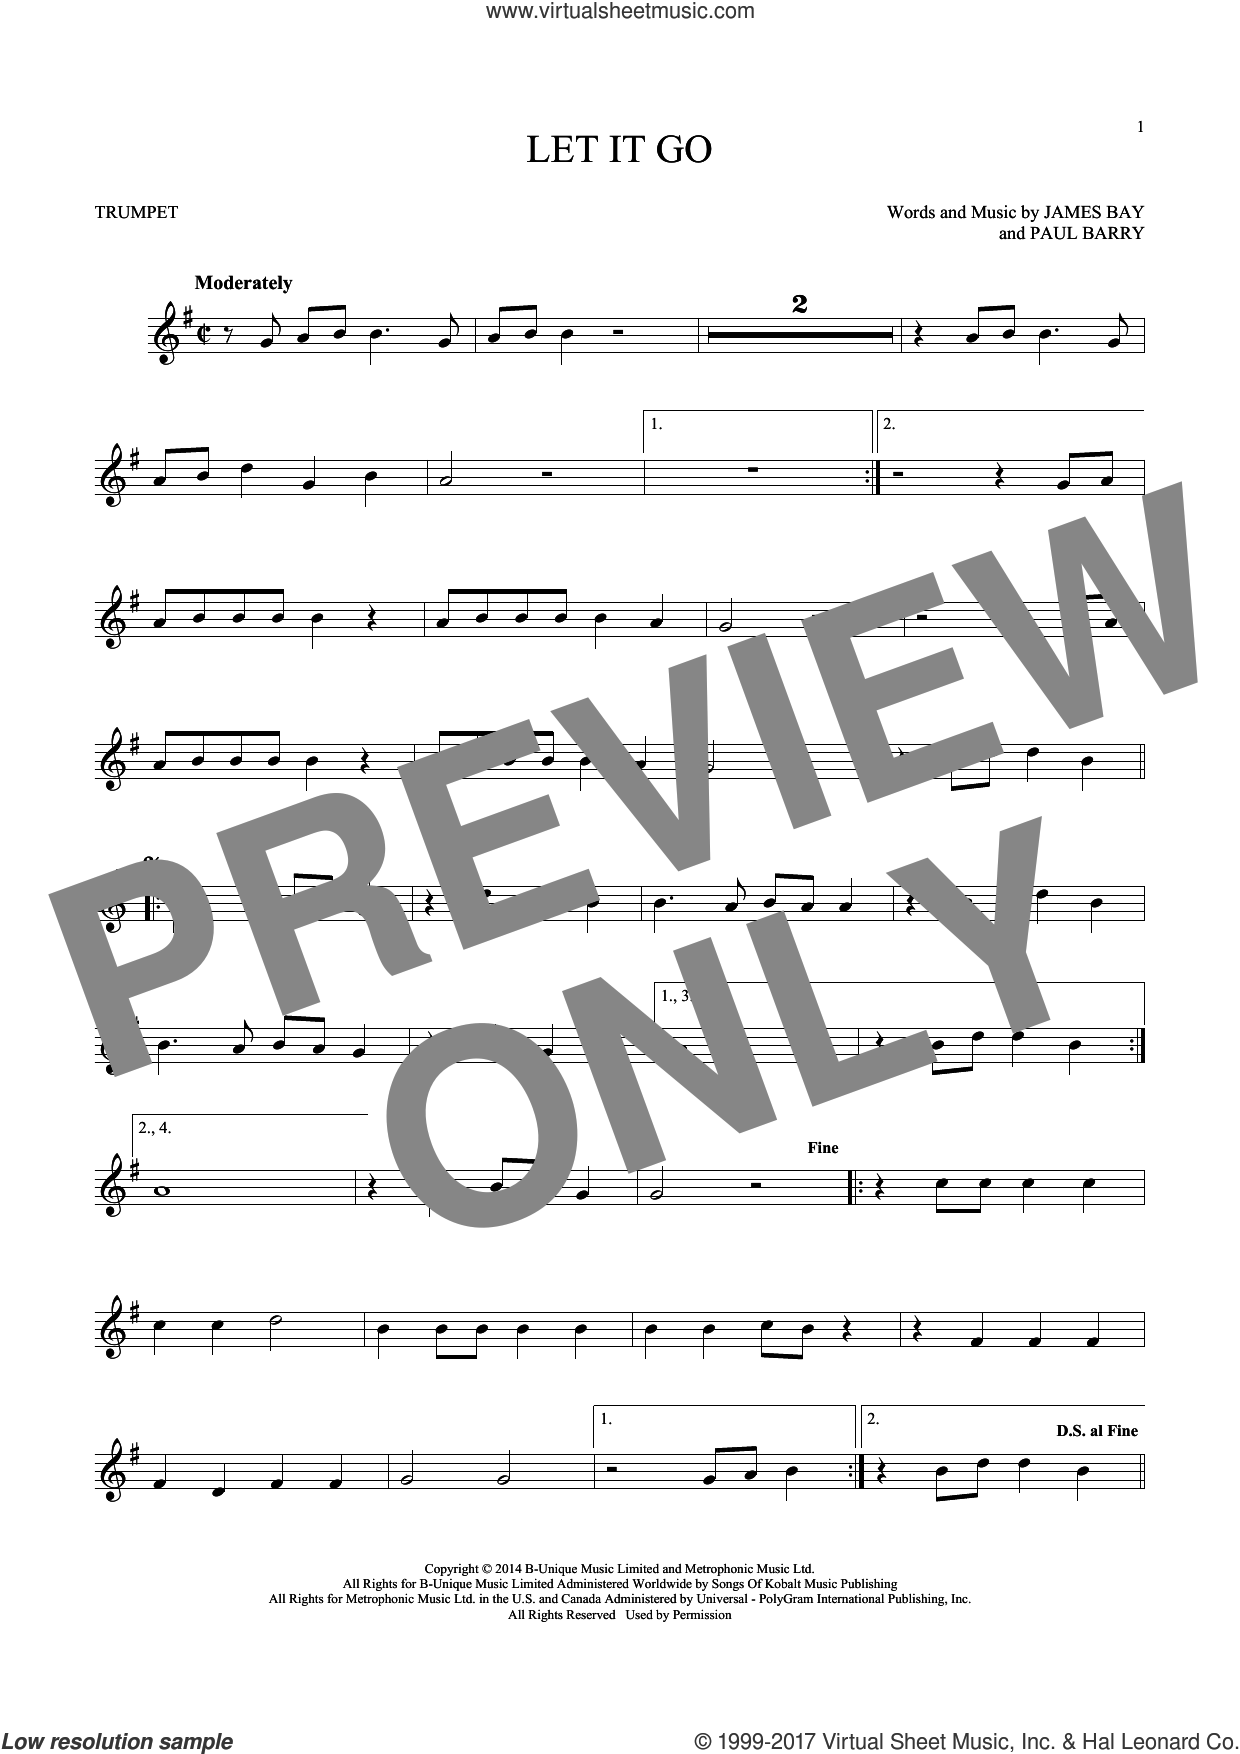 Let It Go sheet music for trumpet solo by James Bay and Paul Barry, intermediate skill level